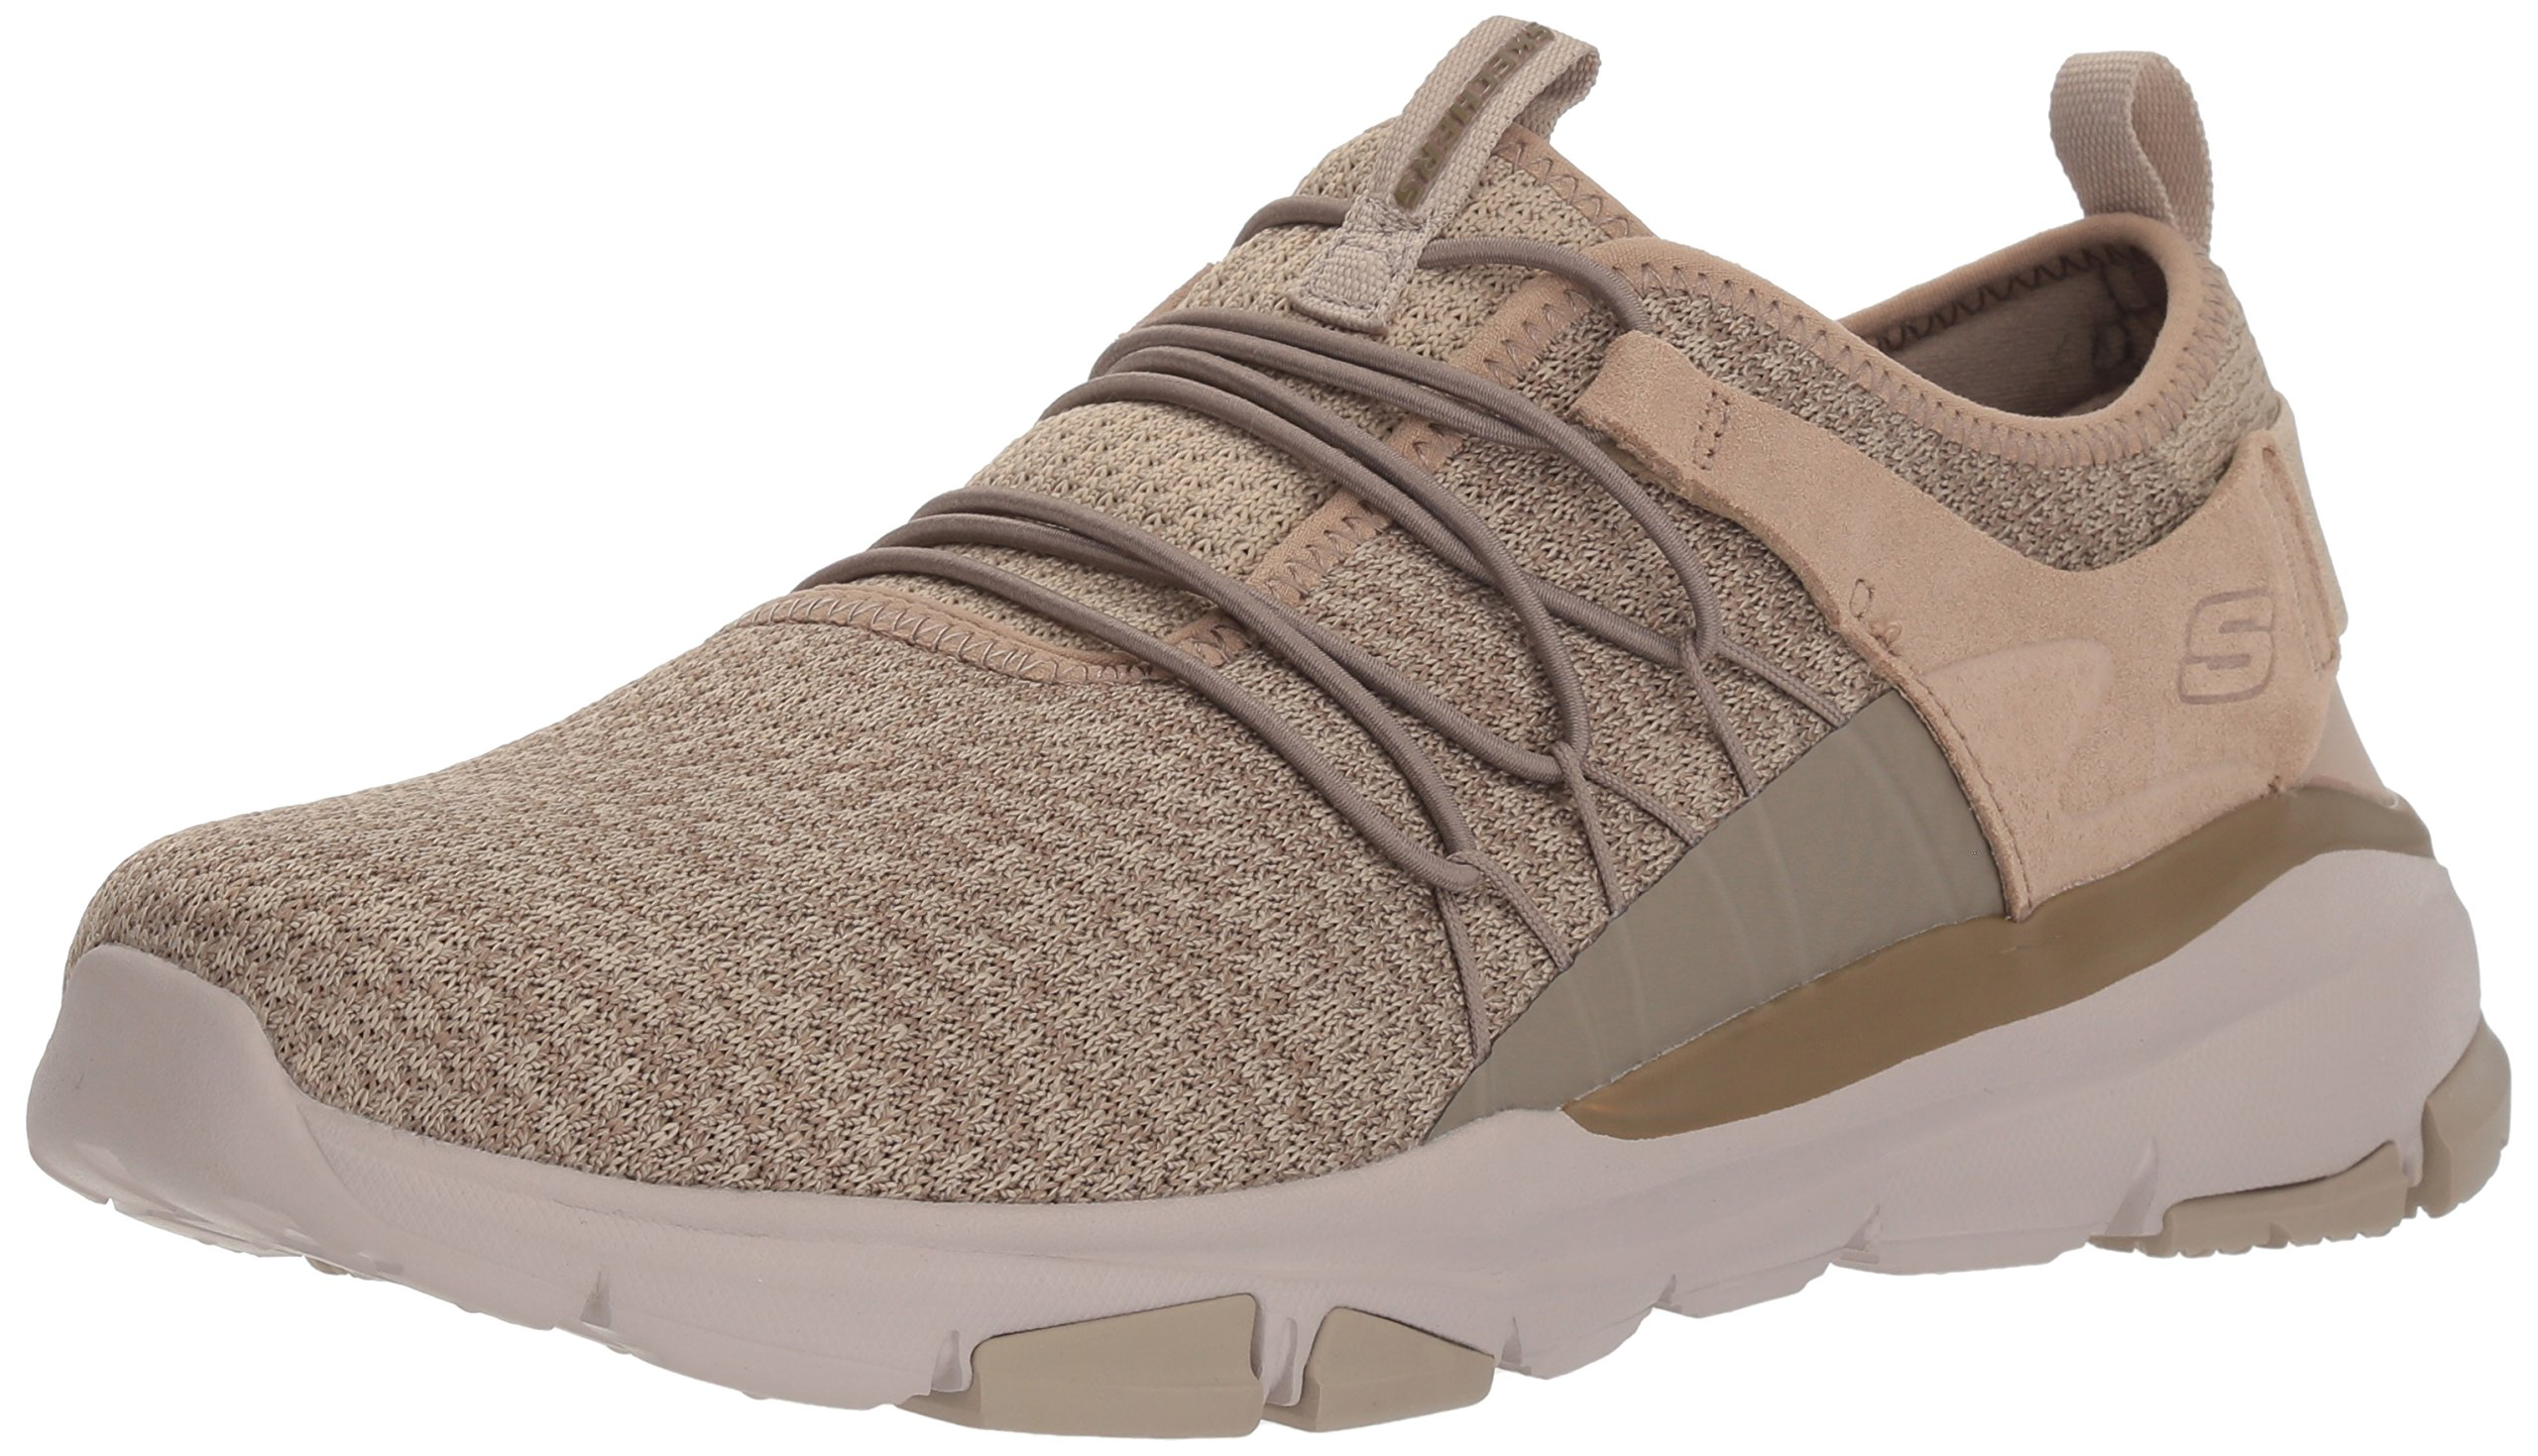 Skechers Men's Relaxed Fit-Soven-Lorado Sneaker